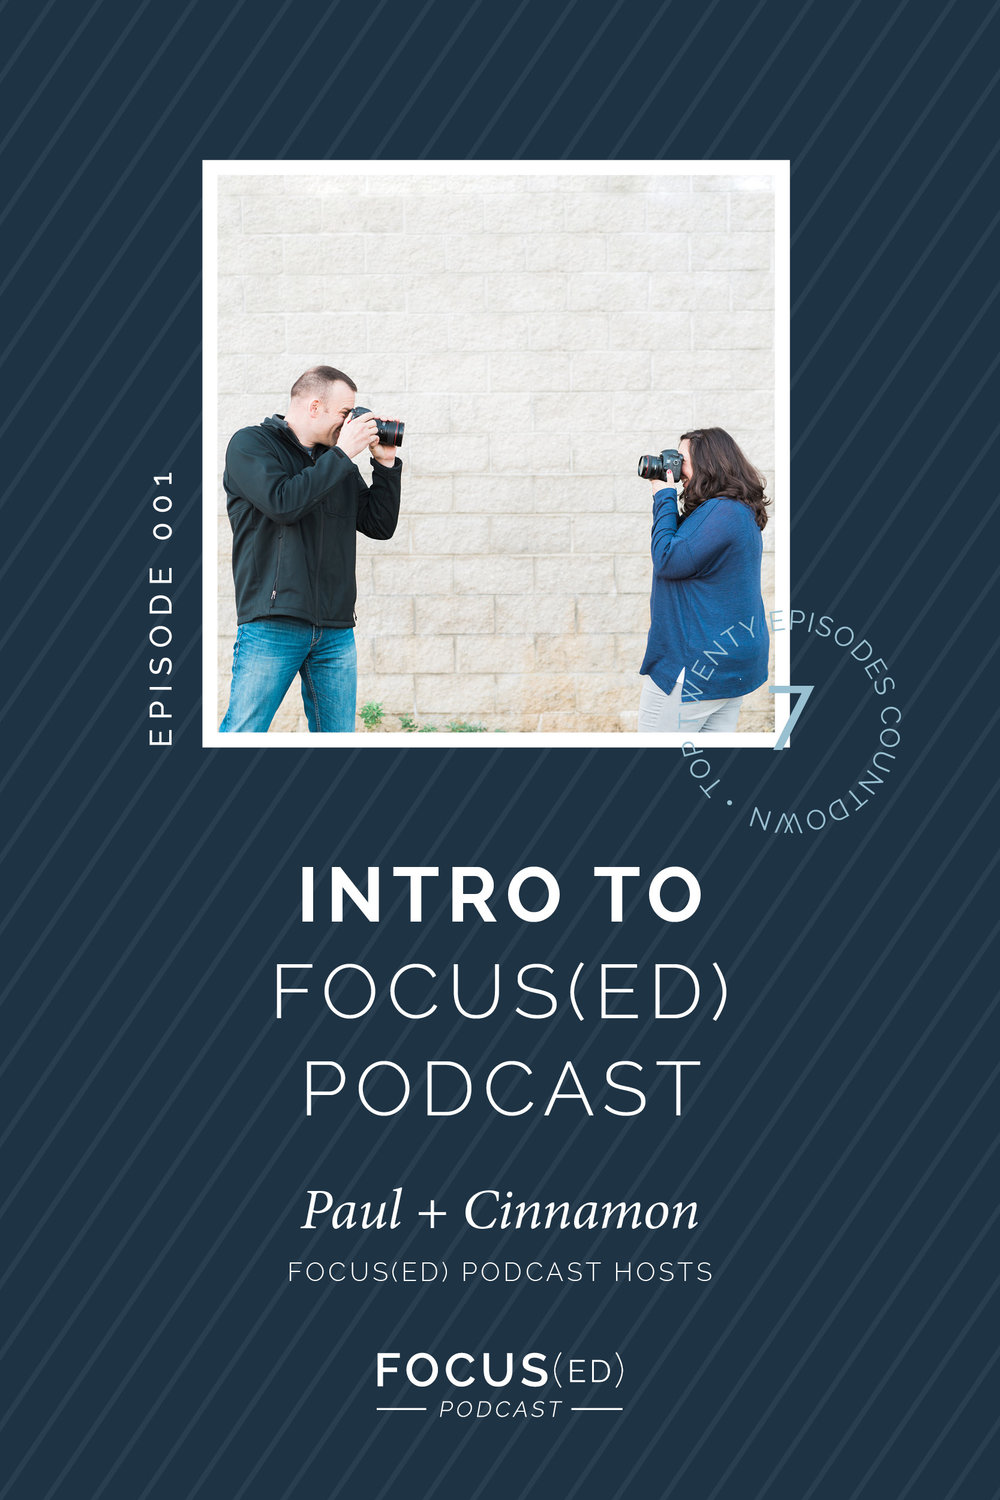 Top 20: #7 Intro to Focus(ed) Podcast, Paul & Cinnamon